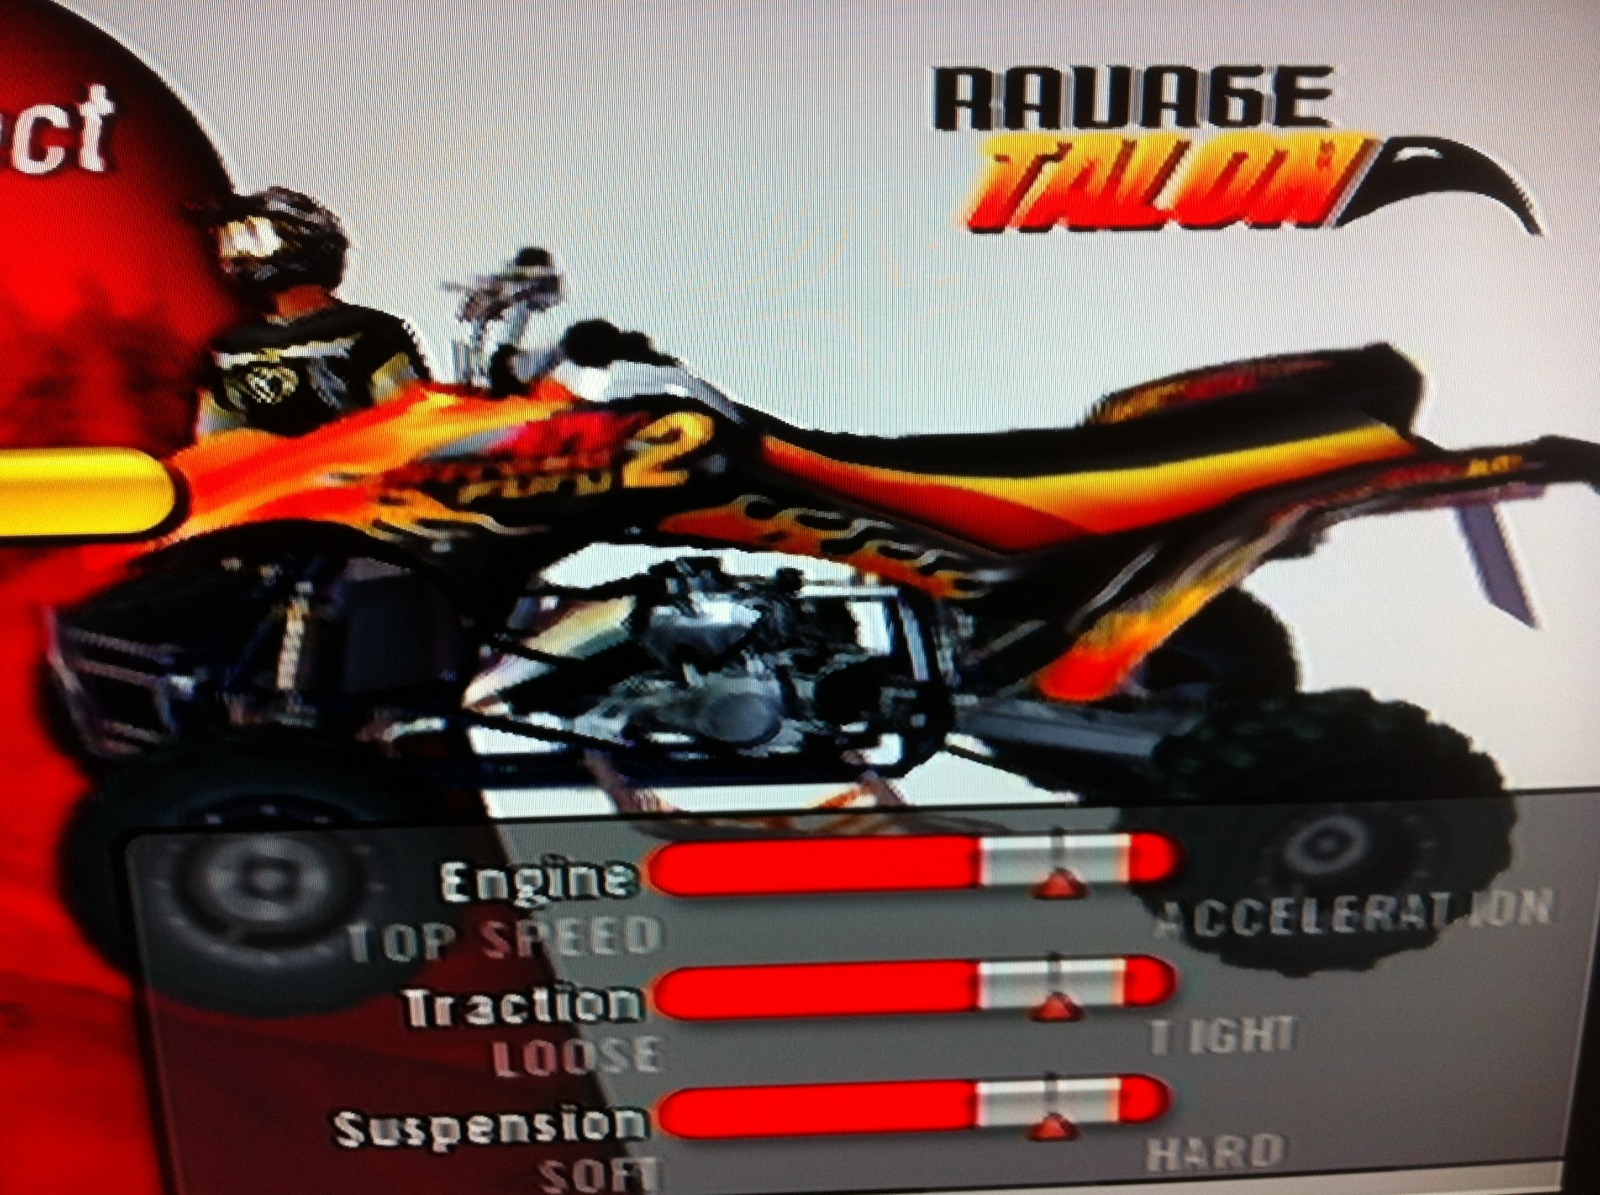 HQ ATV Offroad Fury 2 Wallpapers | File 467.09Kb